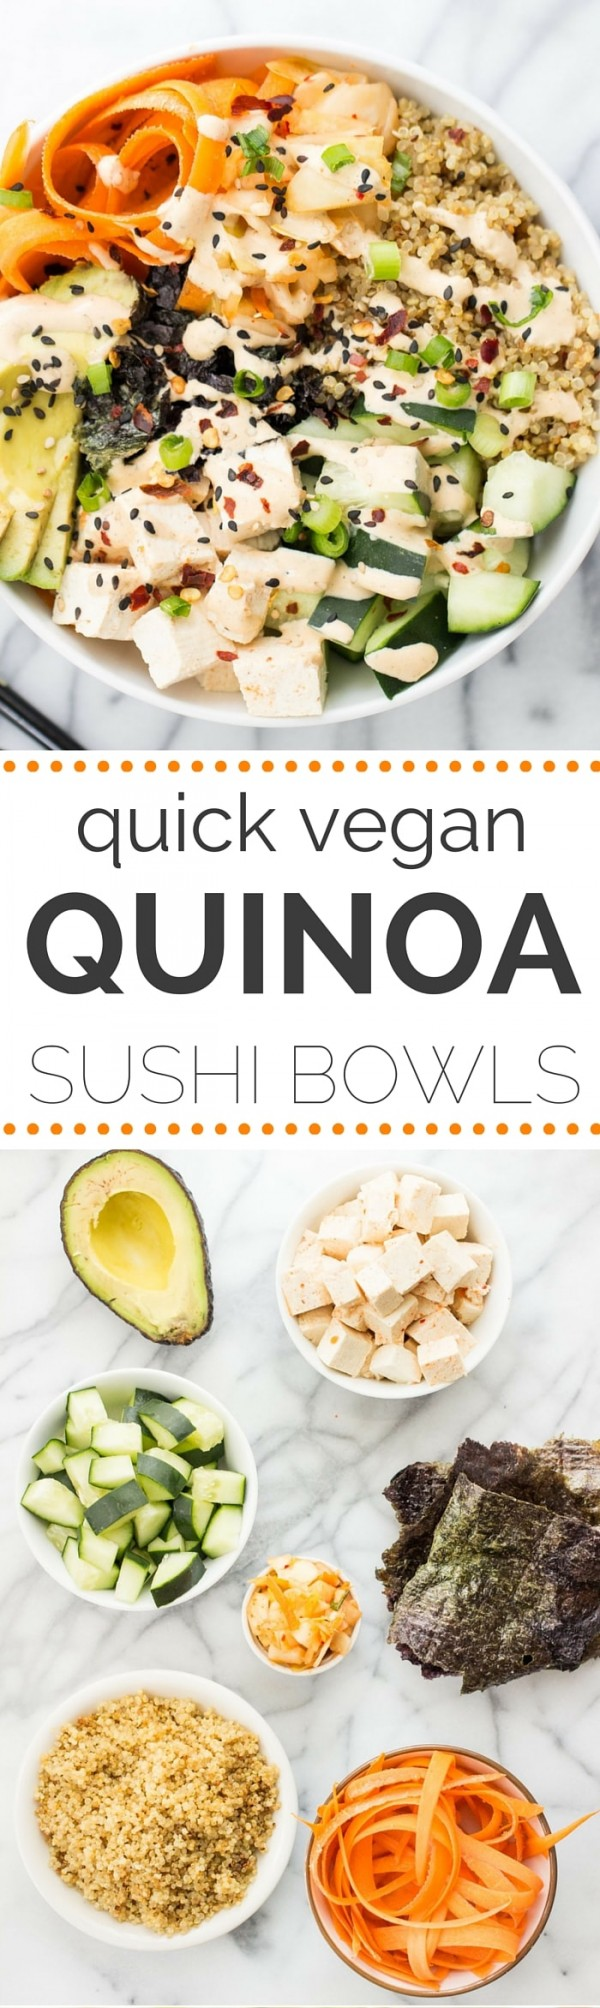 These SIMPLE Quinoa Sushi Bowls are seriously the BEST! So much easier than making sushi at home and they've got all the same flavors!